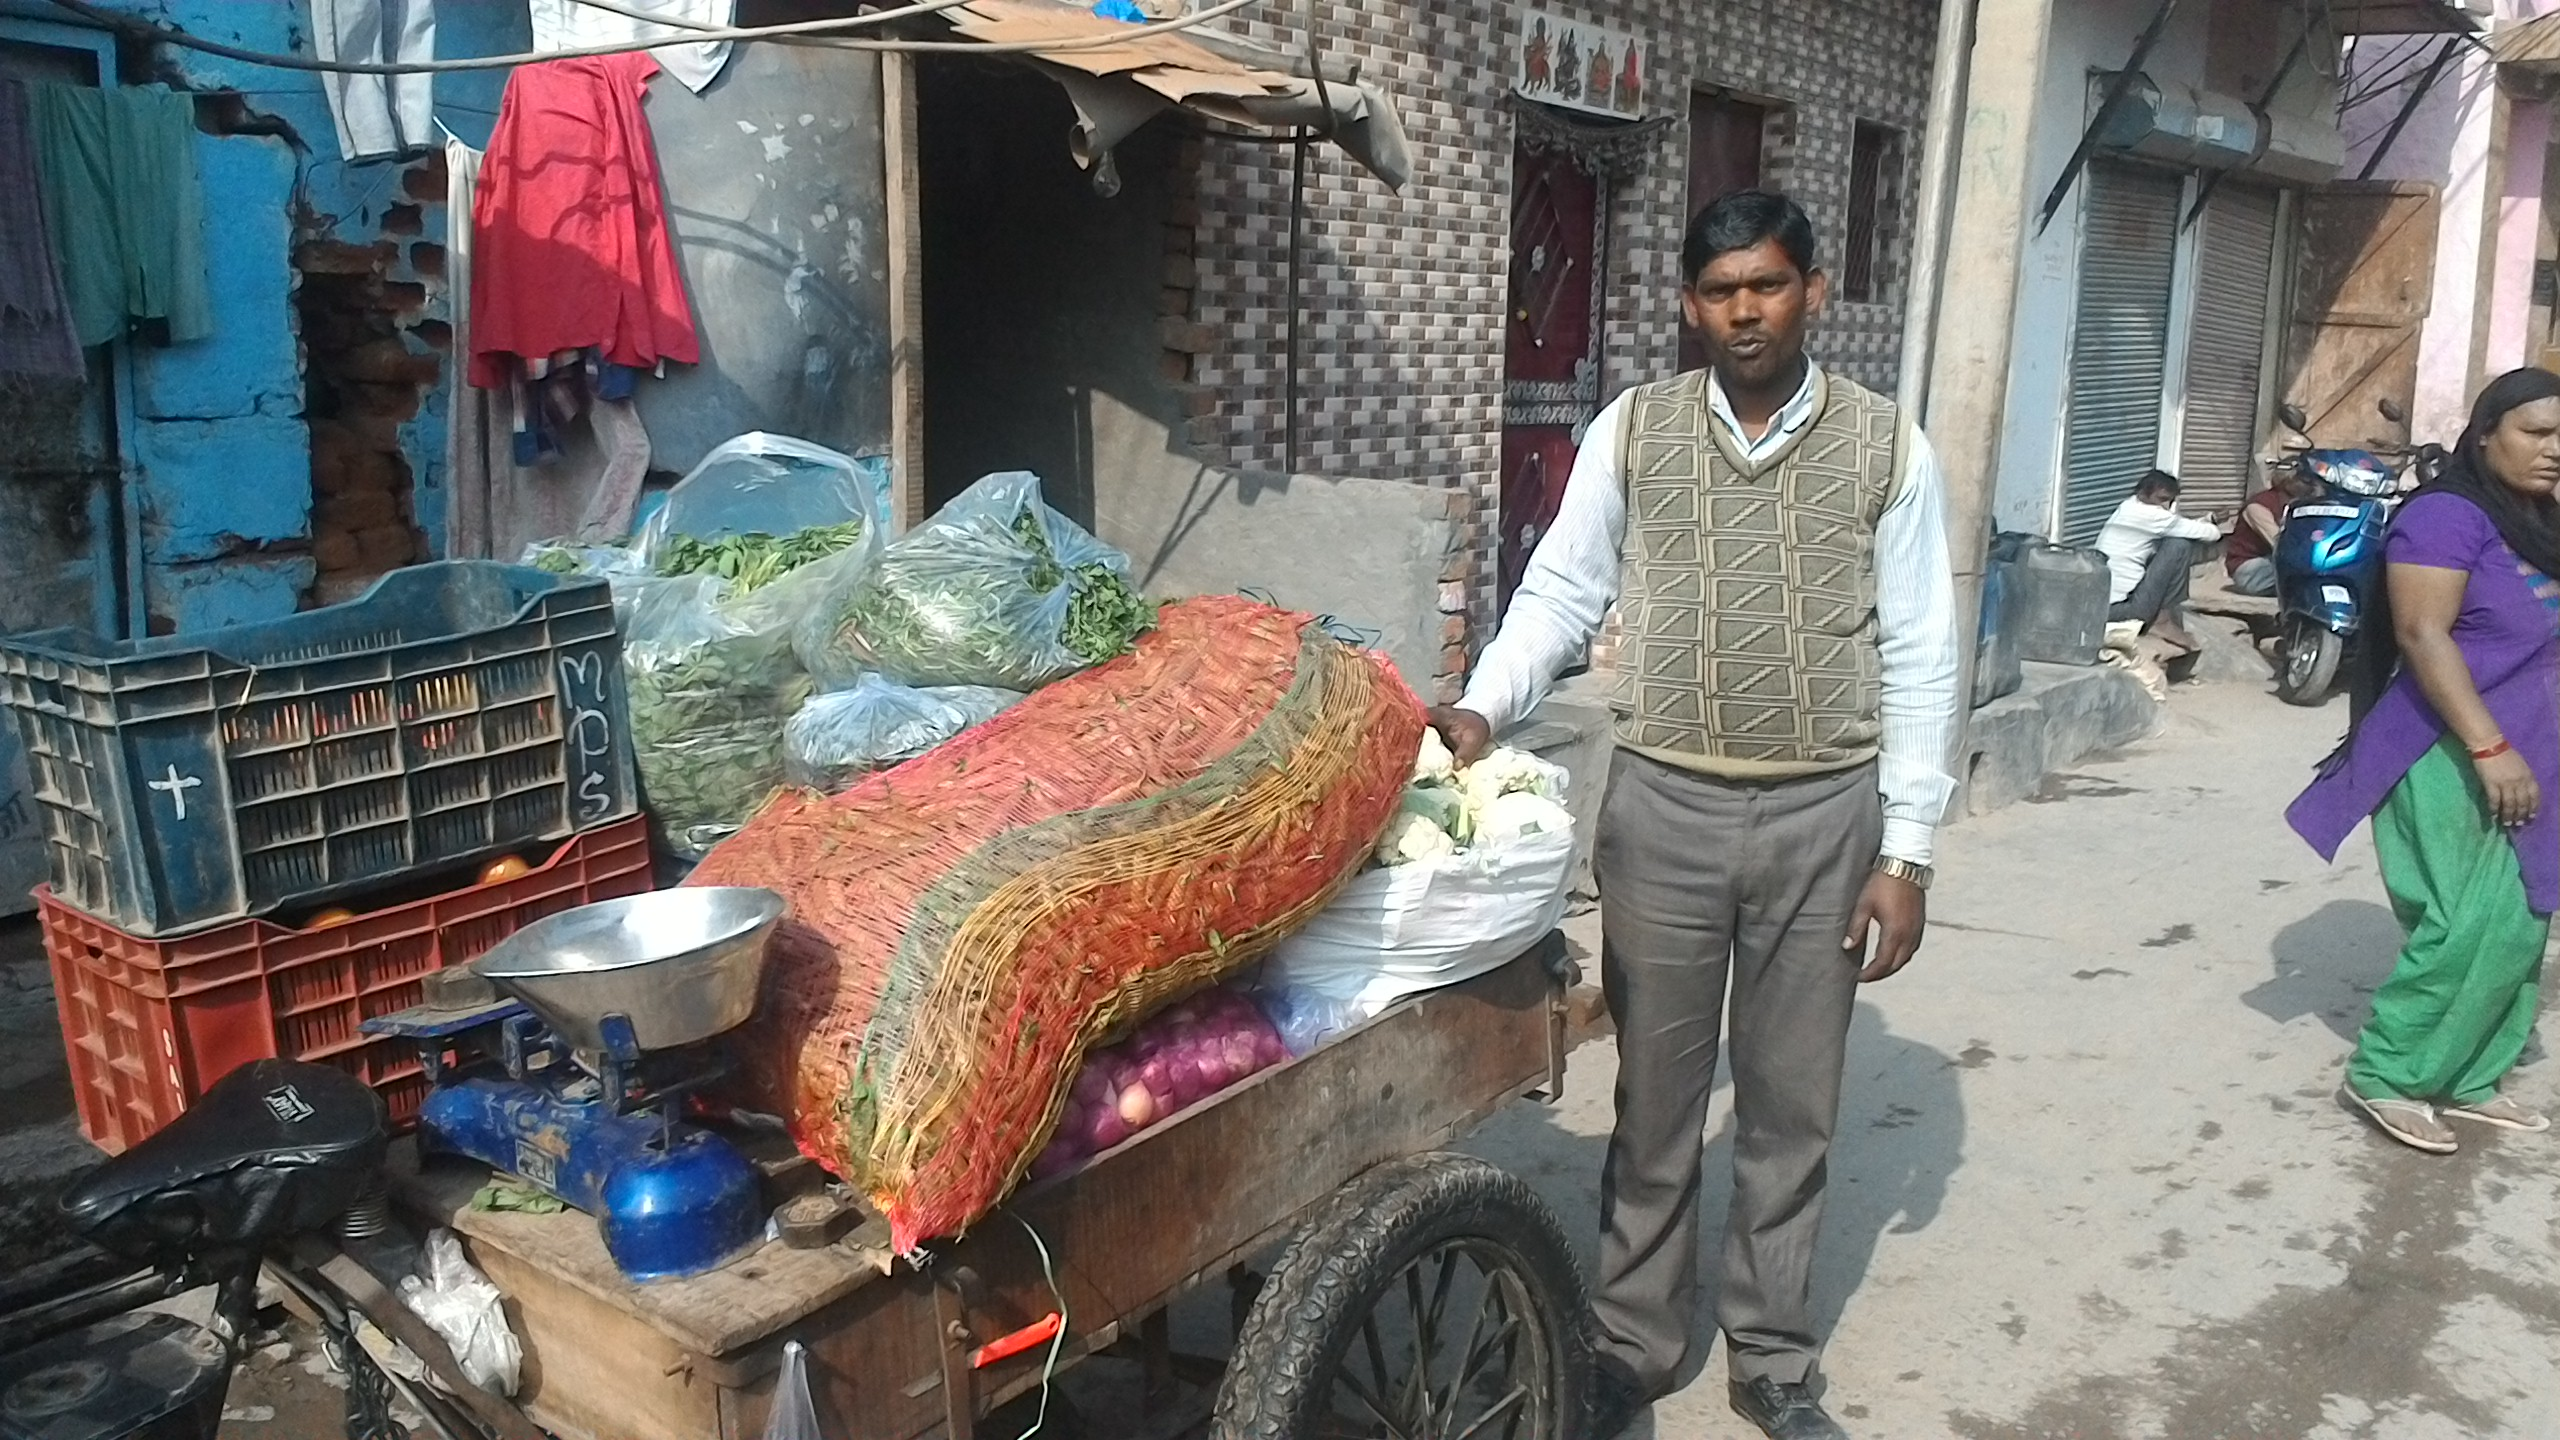 A vegetable seller. Credit: Vyom Anil